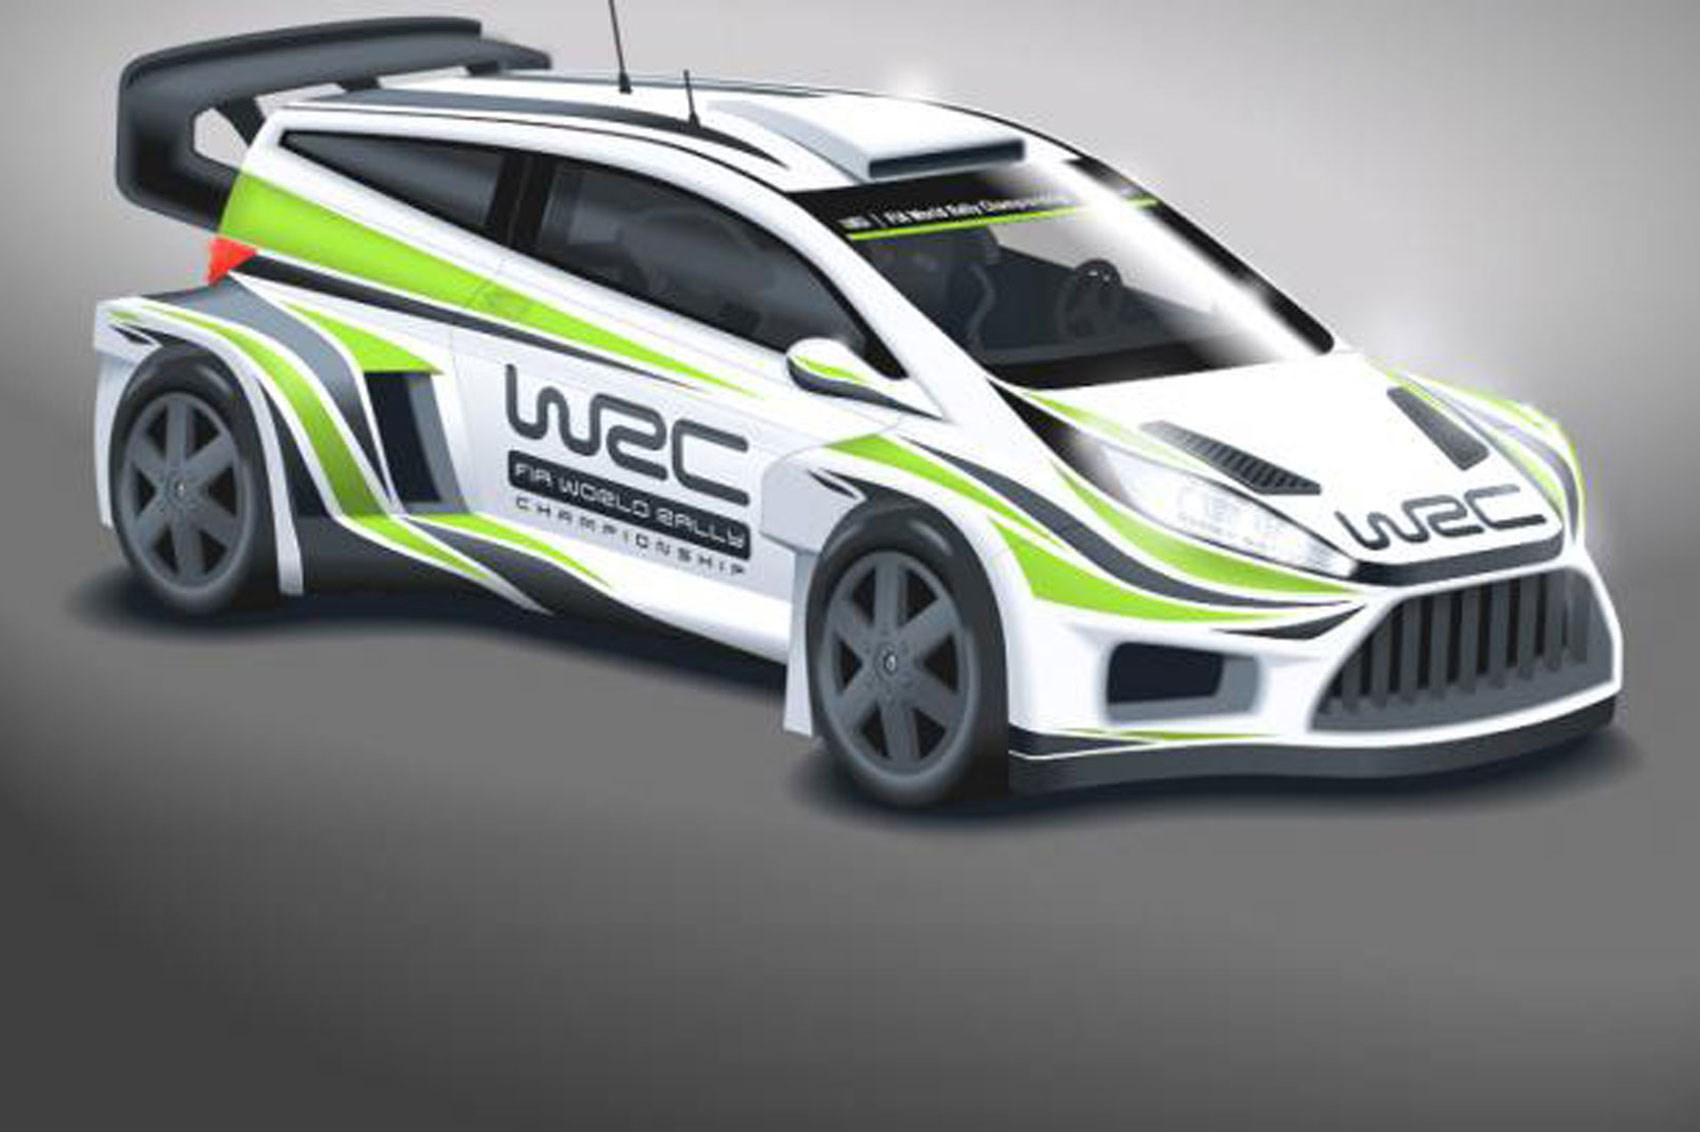 Ultrablogus  Winsome Wild New Look For Wrc Cars In  By Car Magazine With Marvelous Wrc Cars Will Get Wider Bodies Bigger Wings And More Power For  With Lovely  Ford Expedition Interior Also  Wrx Interior In Addition  F Interior And Cl Amg Interior As Well As  Civic Interior Additionally  Audi A Interior From Carmagazinecouk With Ultrablogus  Marvelous Wild New Look For Wrc Cars In  By Car Magazine With Lovely Wrc Cars Will Get Wider Bodies Bigger Wings And More Power For  And Winsome  Ford Expedition Interior Also  Wrx Interior In Addition  F Interior From Carmagazinecouk